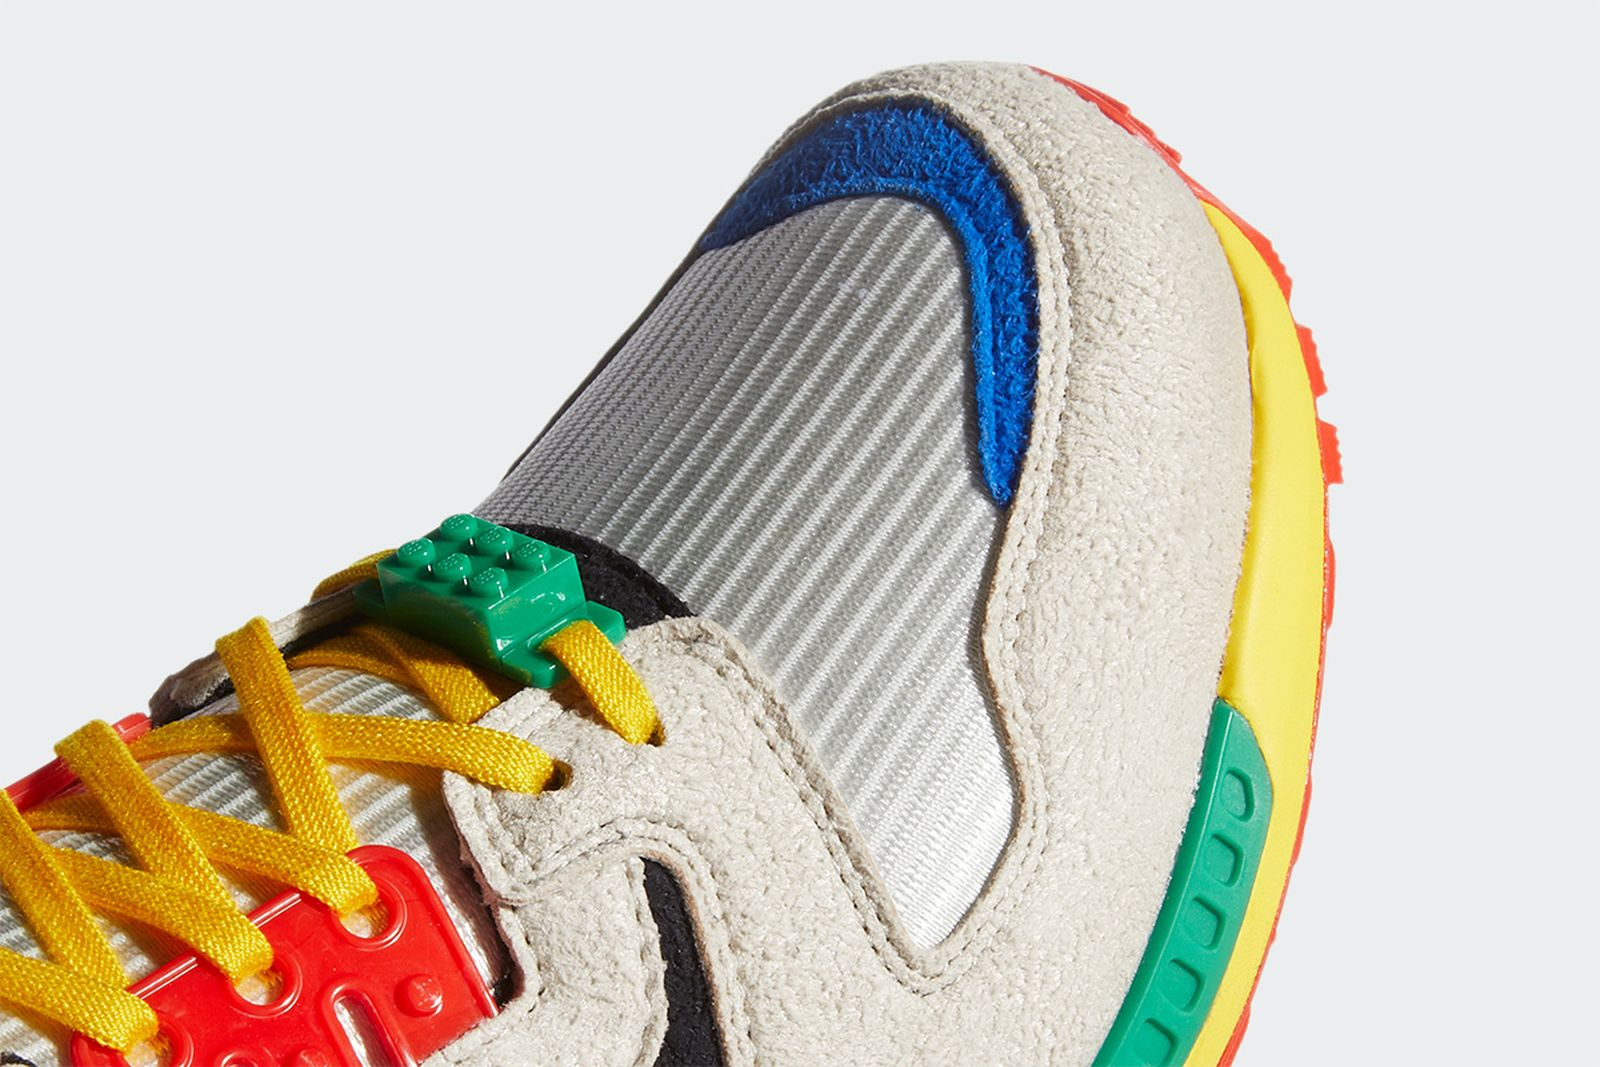 lego-adidas-zx-8000-release-date-price-04